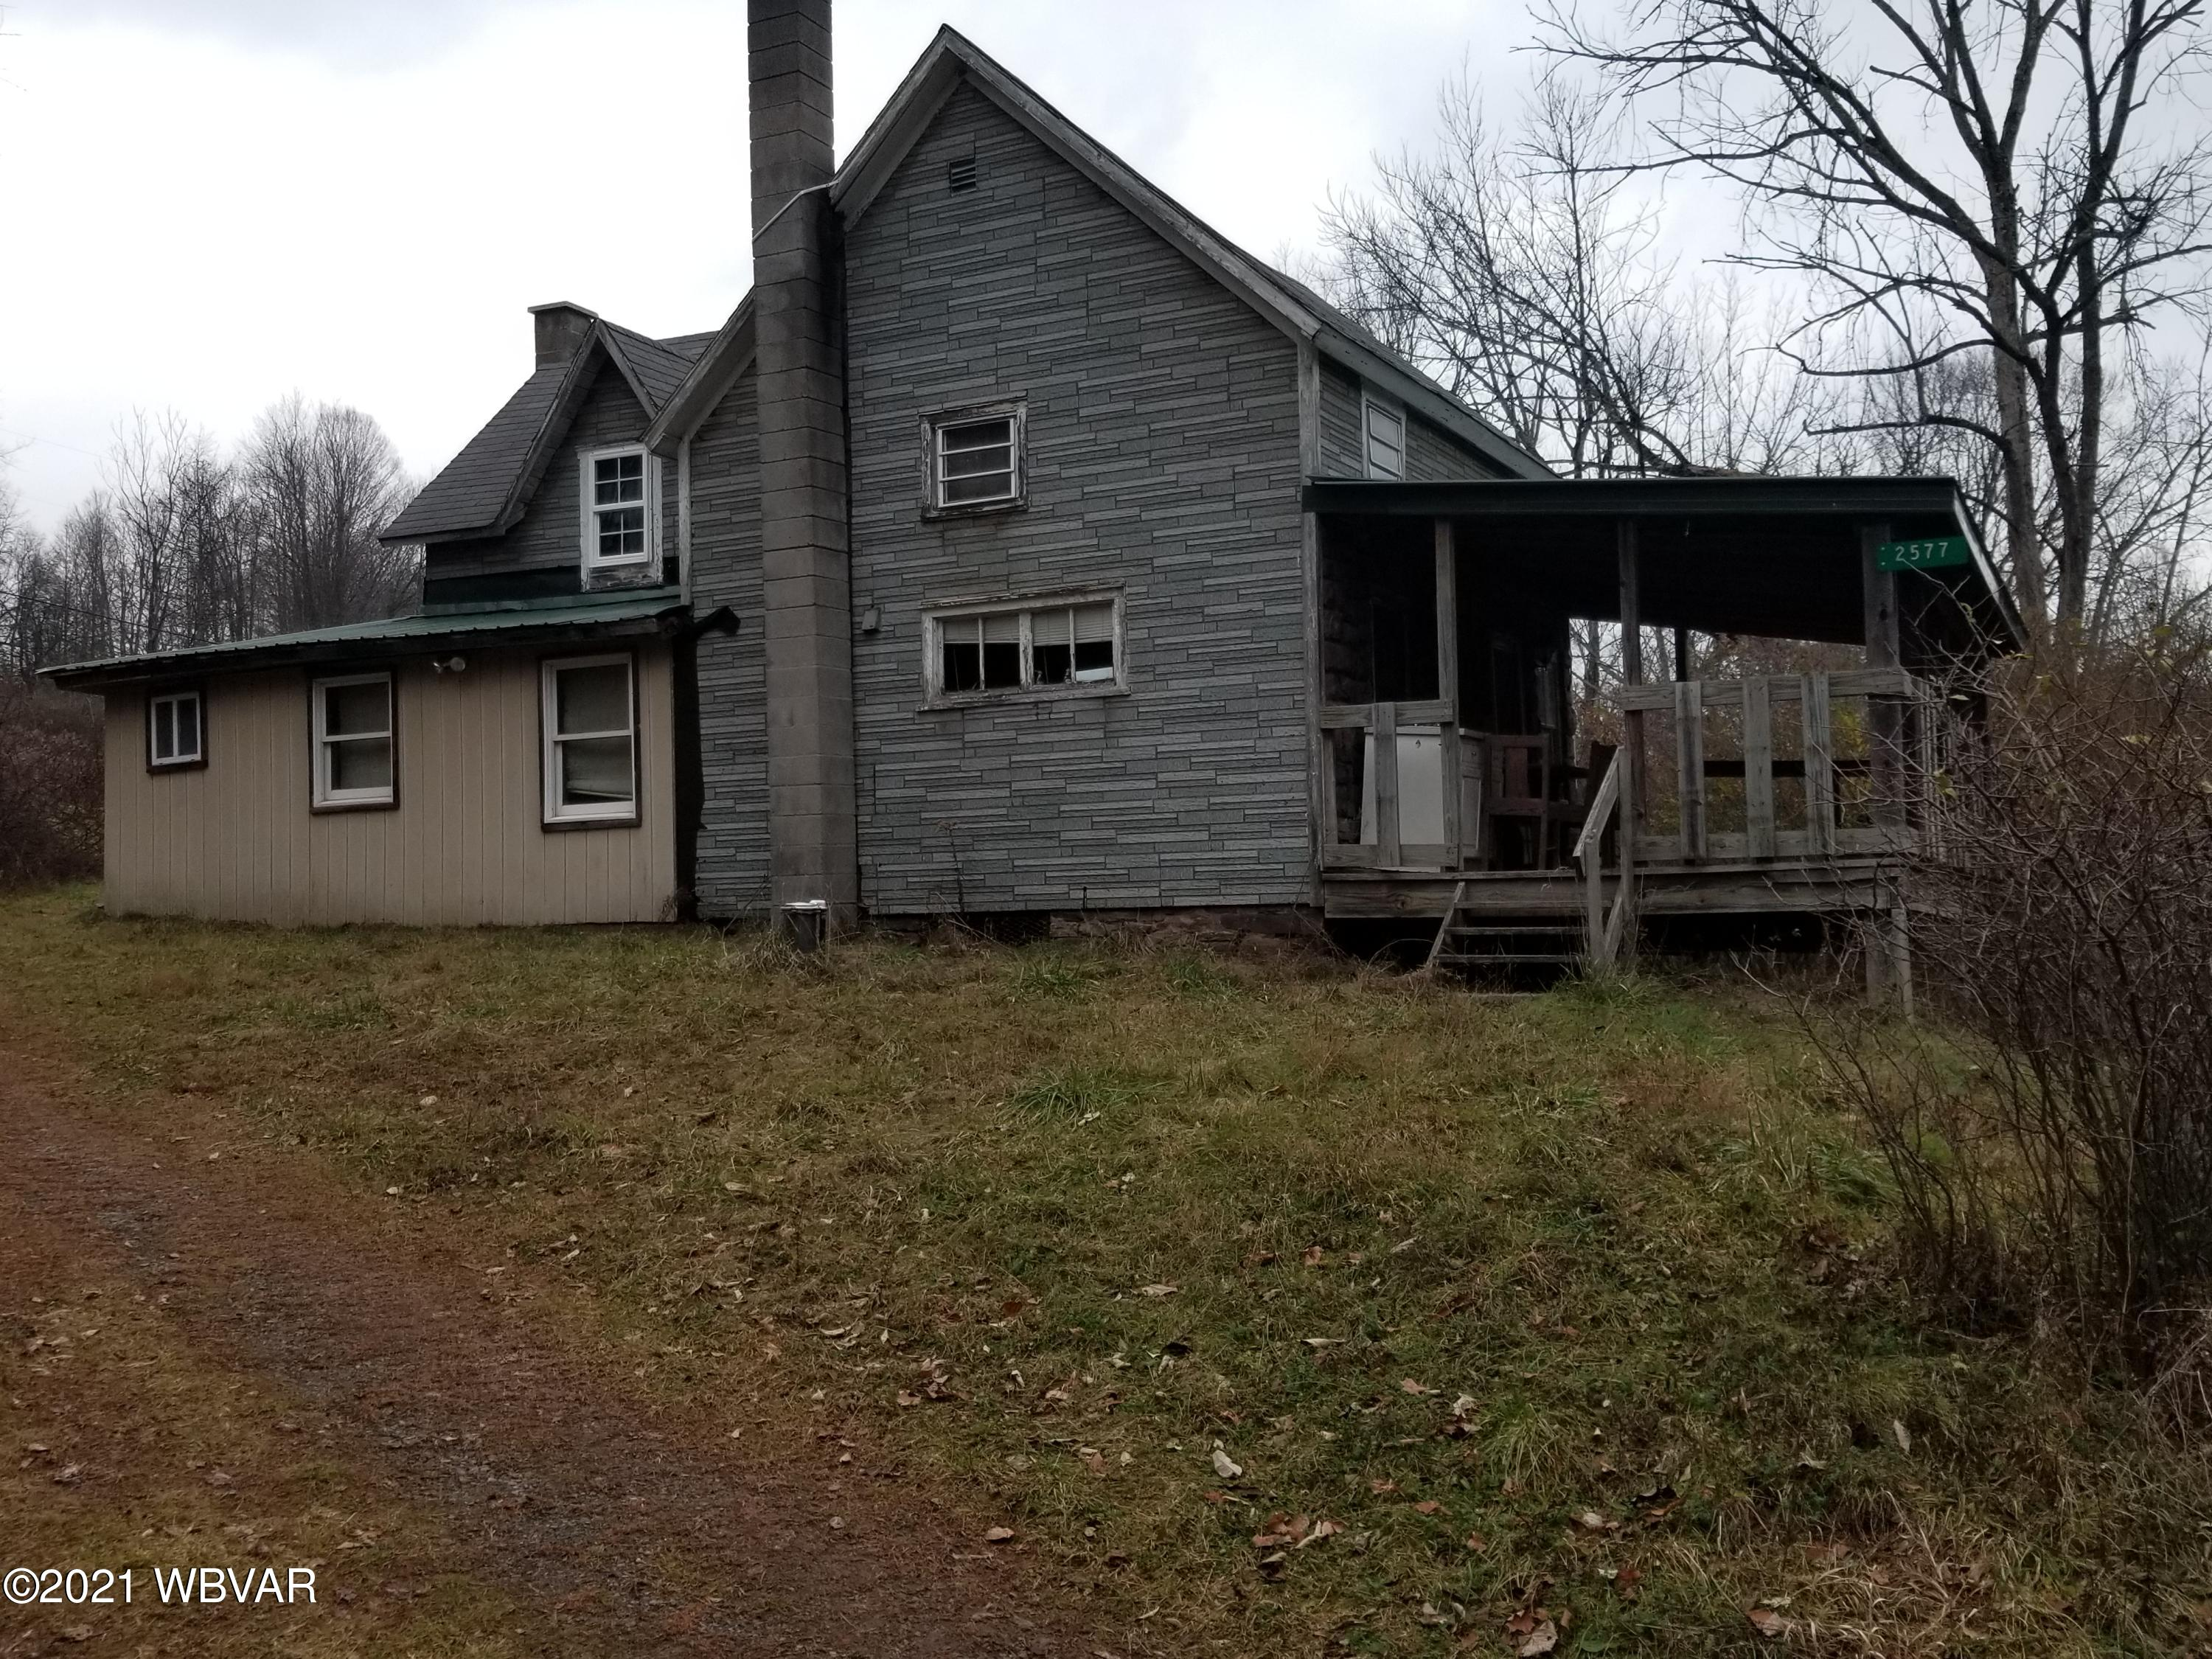 2577 WHISKEY RUN ROAD, Muncy Valley, PA 17758, 3 Bedrooms Bedrooms, ,1 BathroomBathrooms,Cabin/vacation home,For sale,WHISKEY RUN,WB-91794